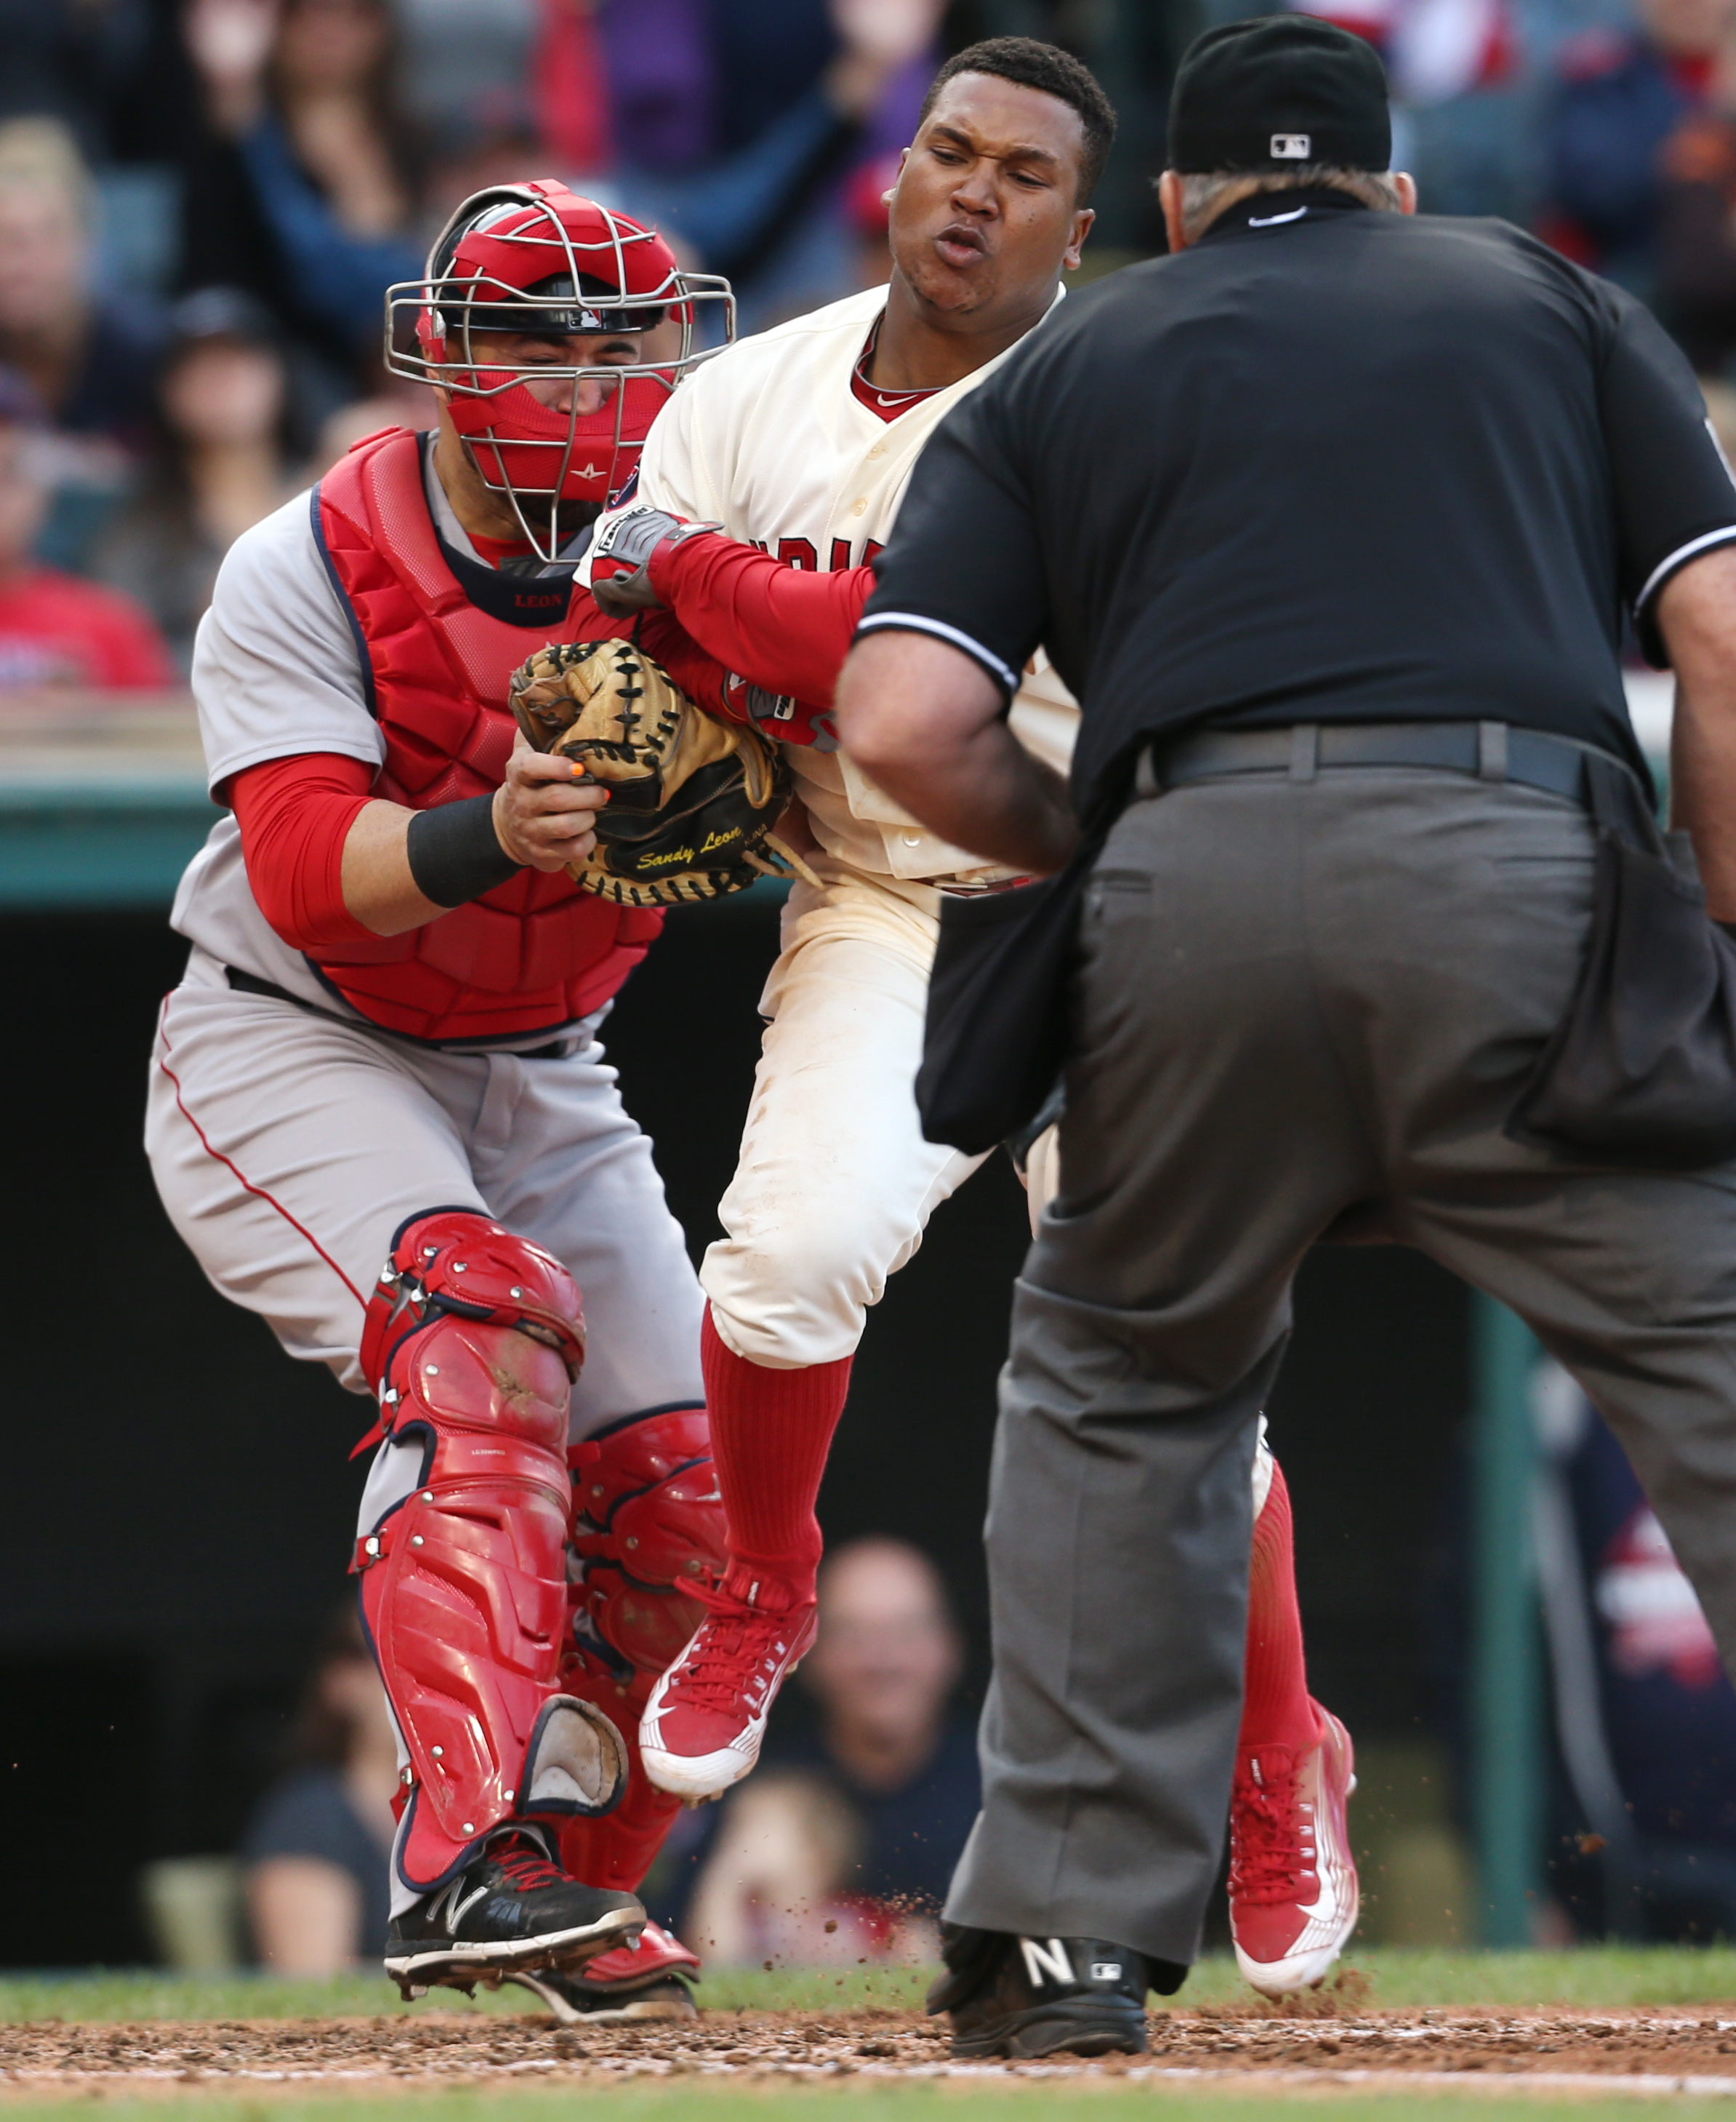 Cleveland Indians' Jose Ramirez is tagged out at home plate by Boston Red Sox' Sandy Leon as umpire Bob Davidson makes the call during the fifth inning of a baseball game, Sunday, Oct. 4, 2015, in Cleveland. (AP Photo/Ron Schwane)